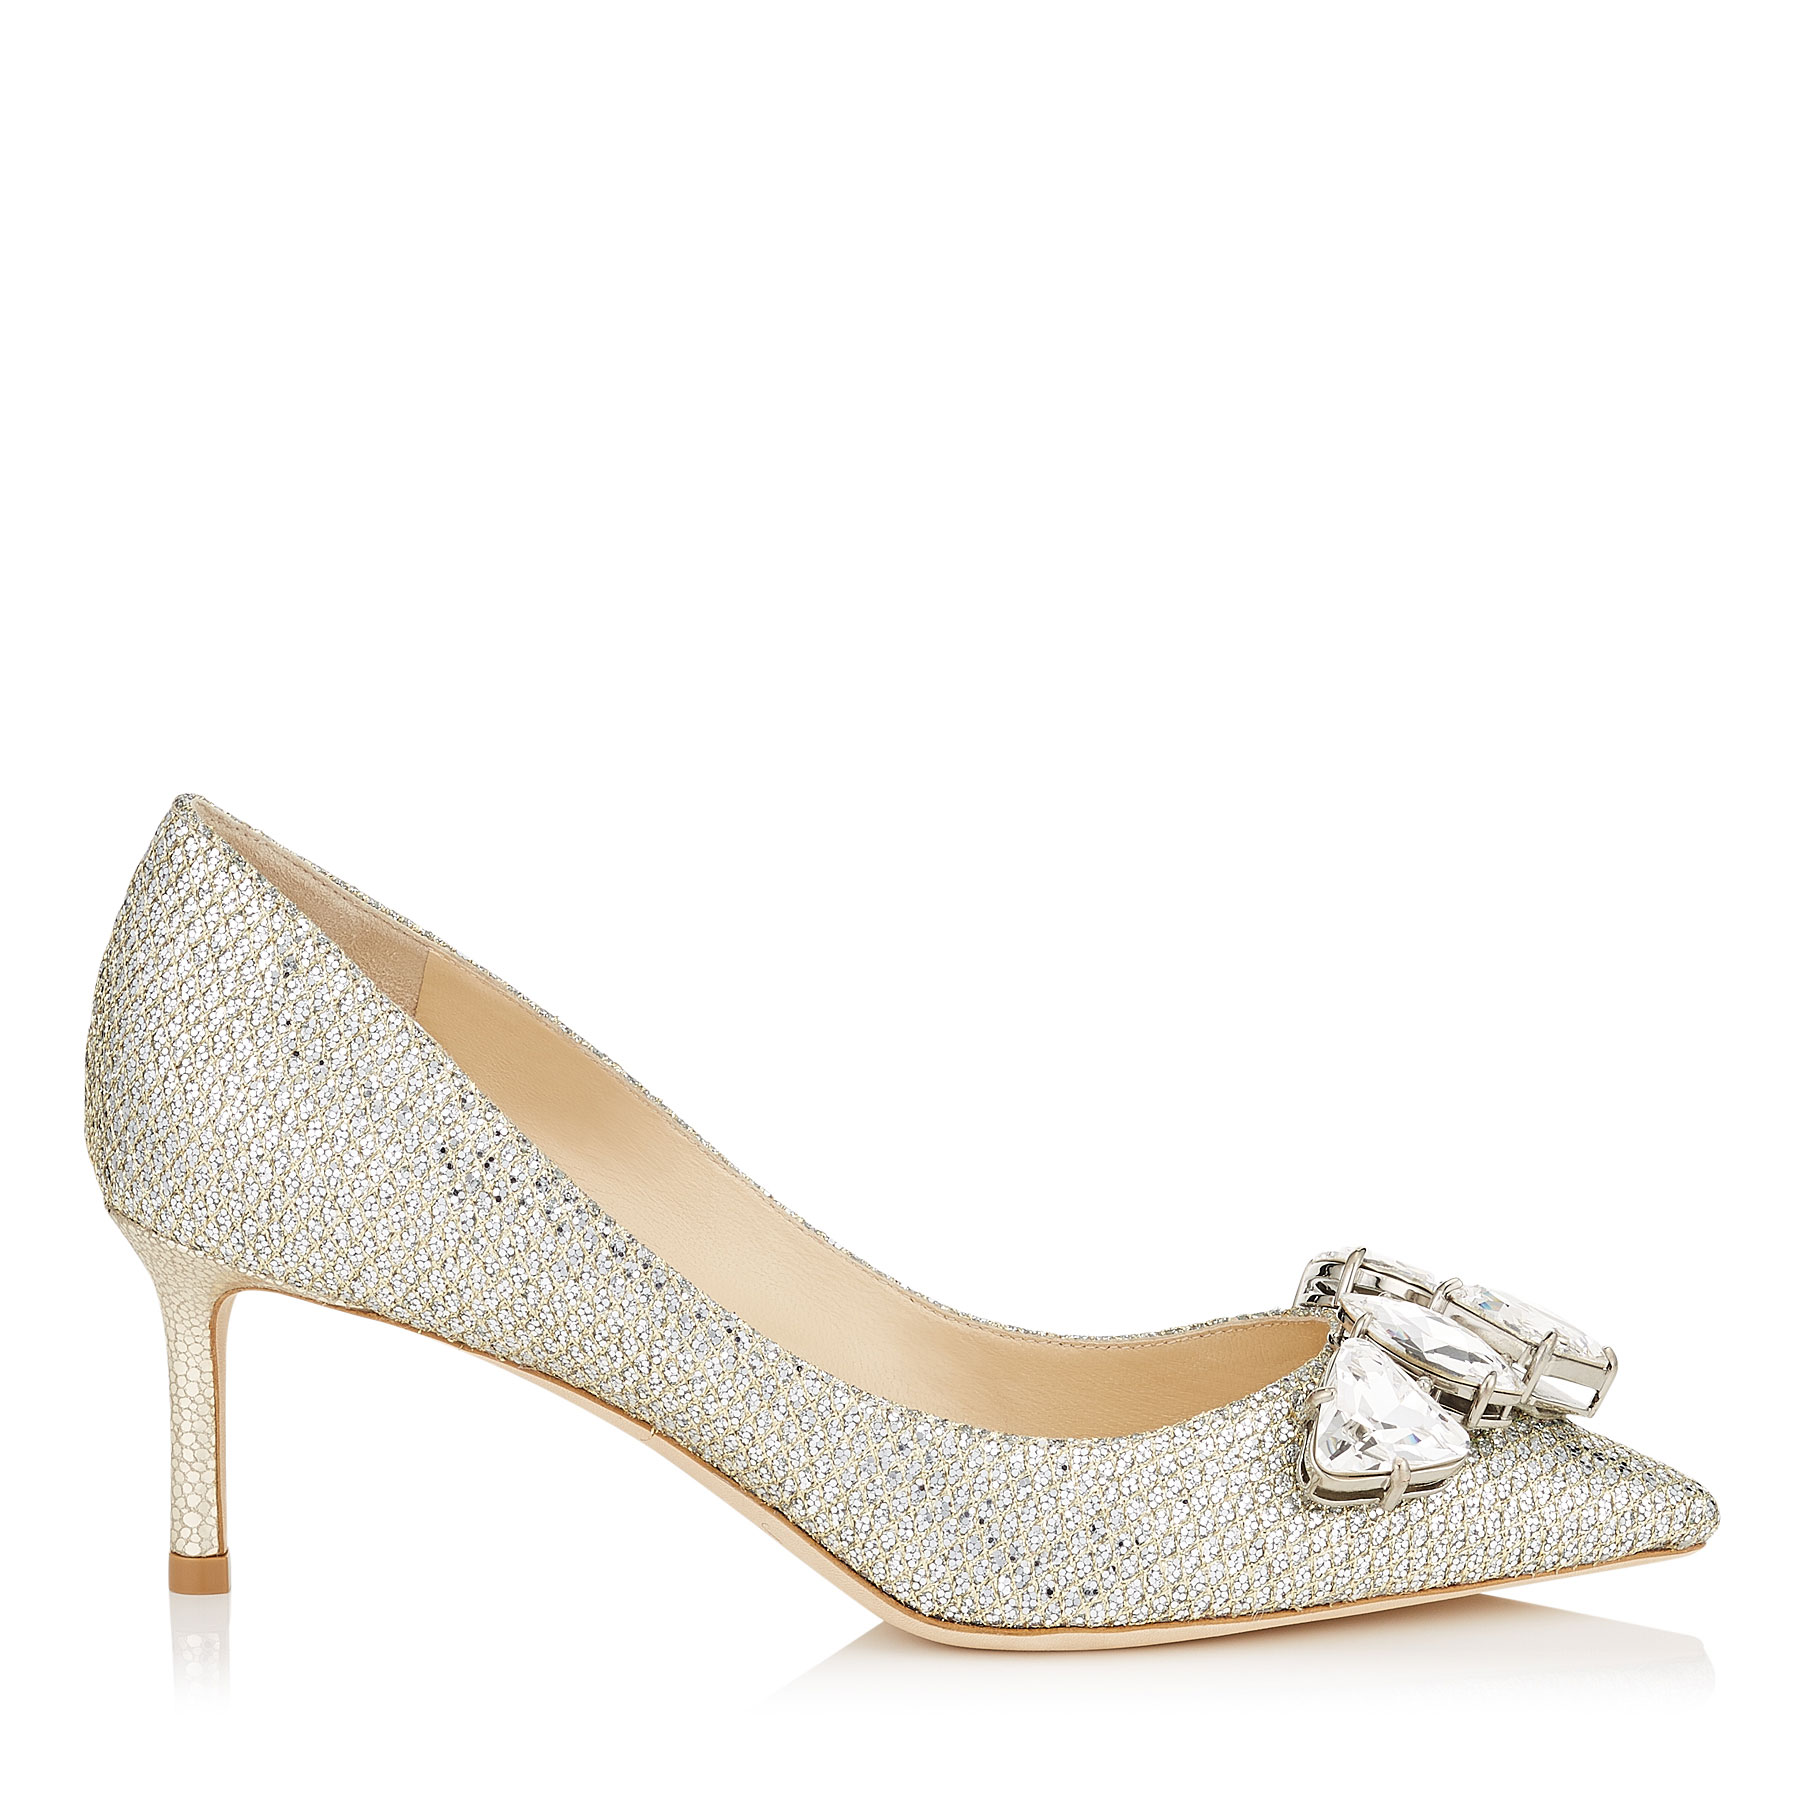 MARVEL 60 Champagne Glitter Fabric Pointy Toe Pumps with Crystal Piece